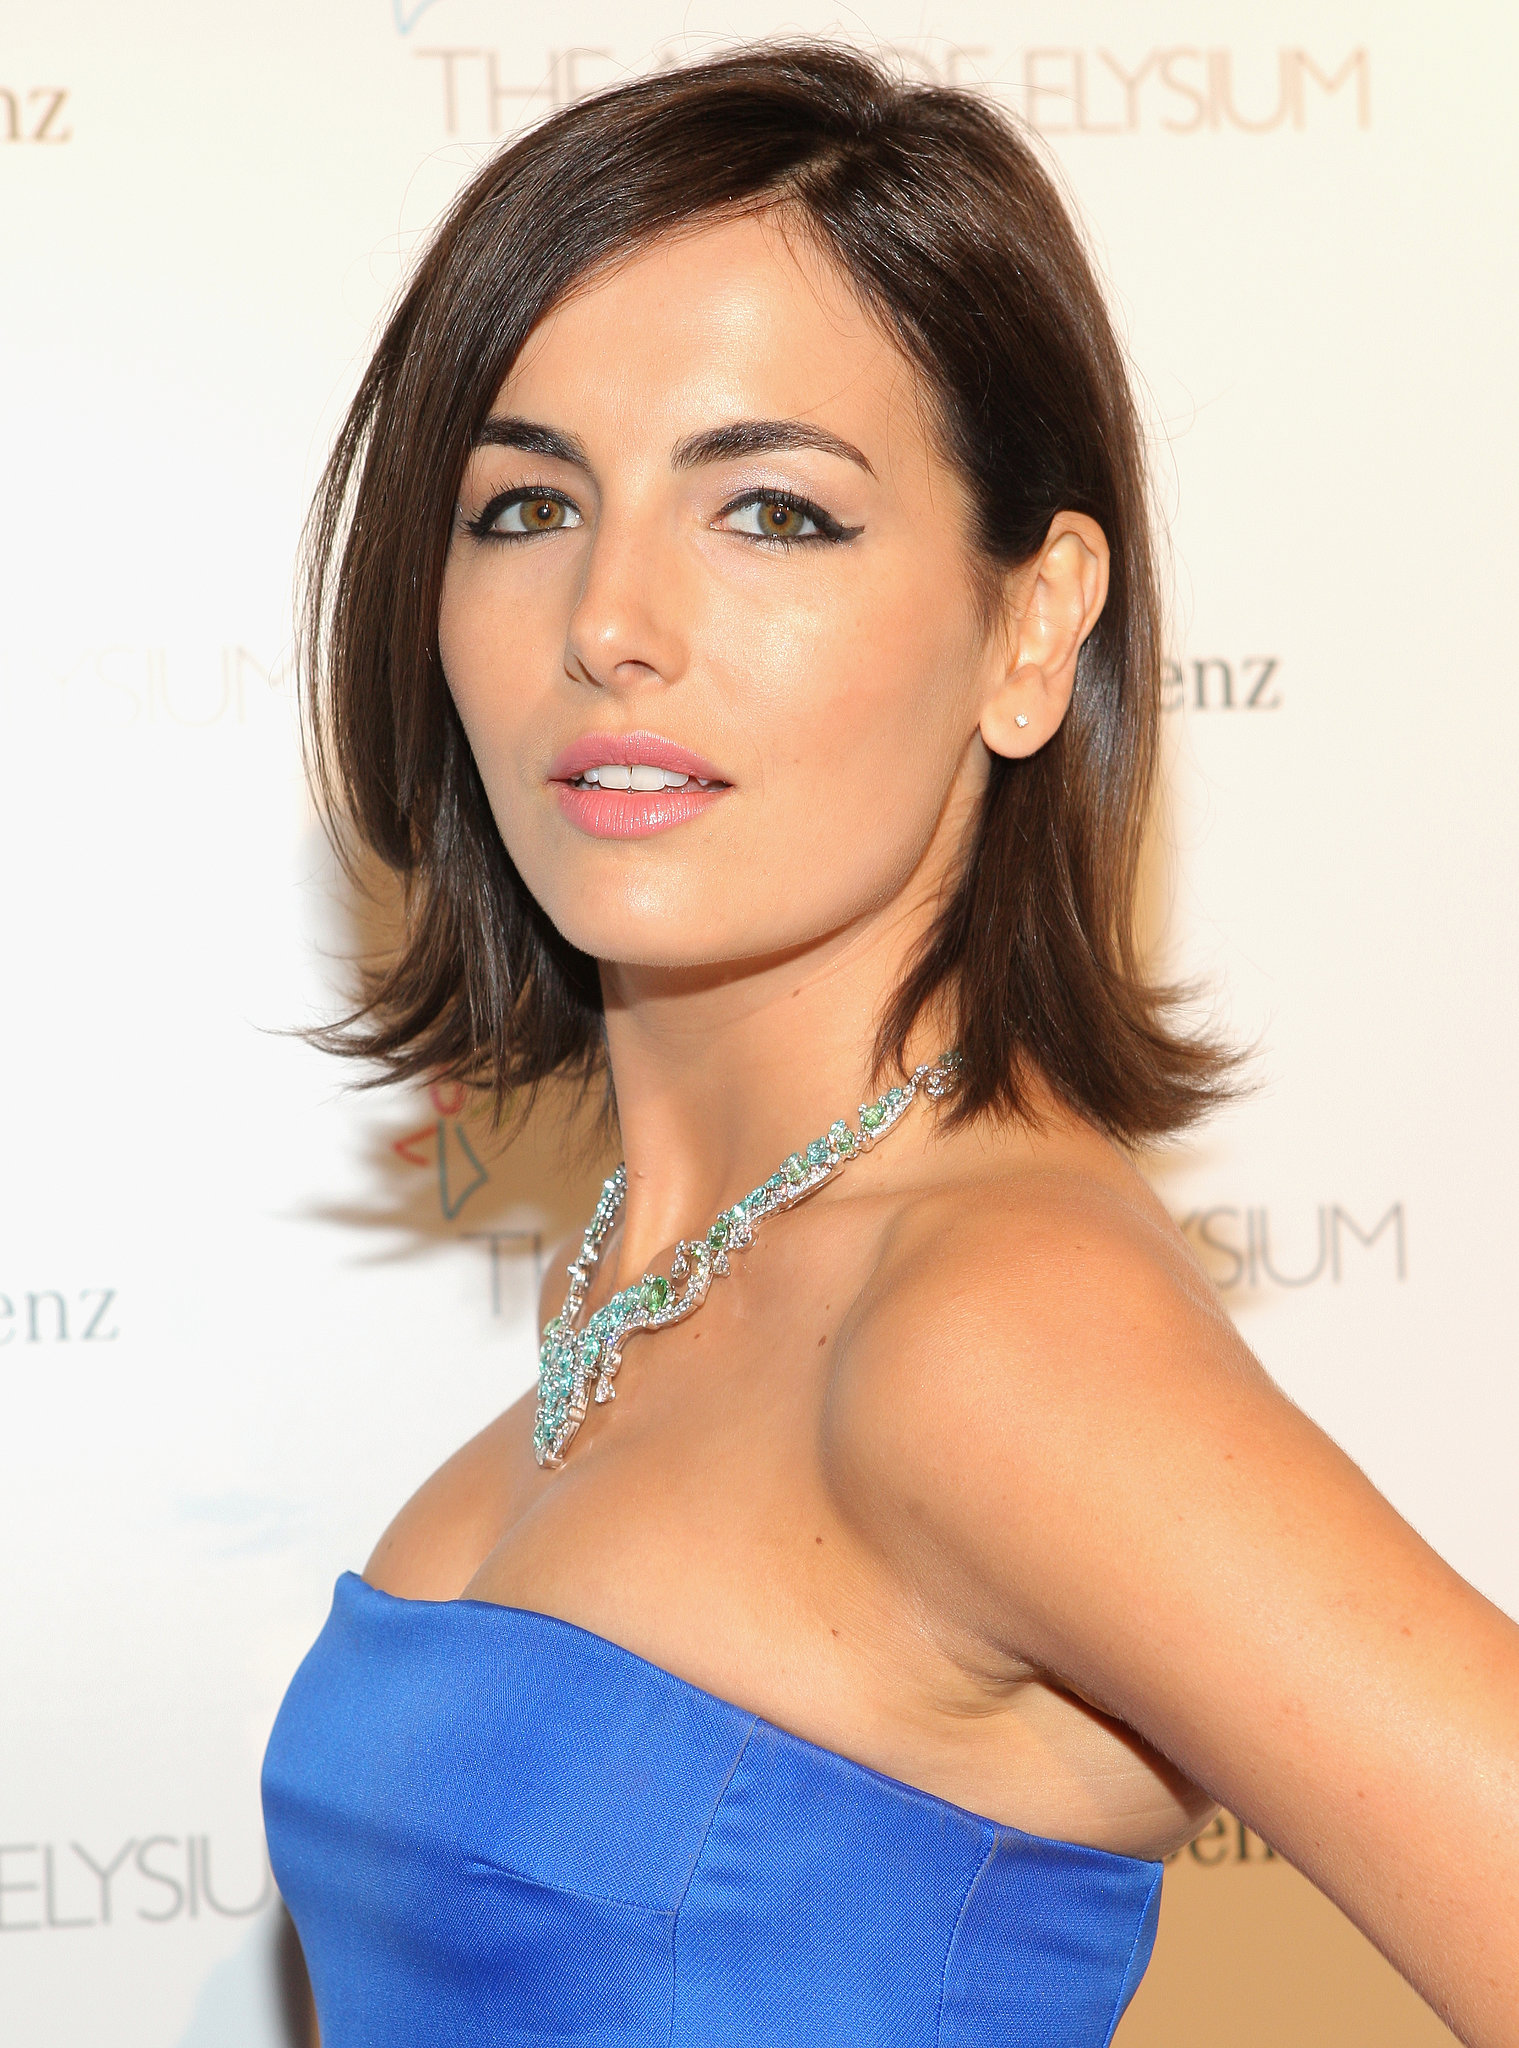 The 31-year old daughter of father Jack Routh and mother Cristina Routh, 171 cm tall Camilla Belle in 2018 photo